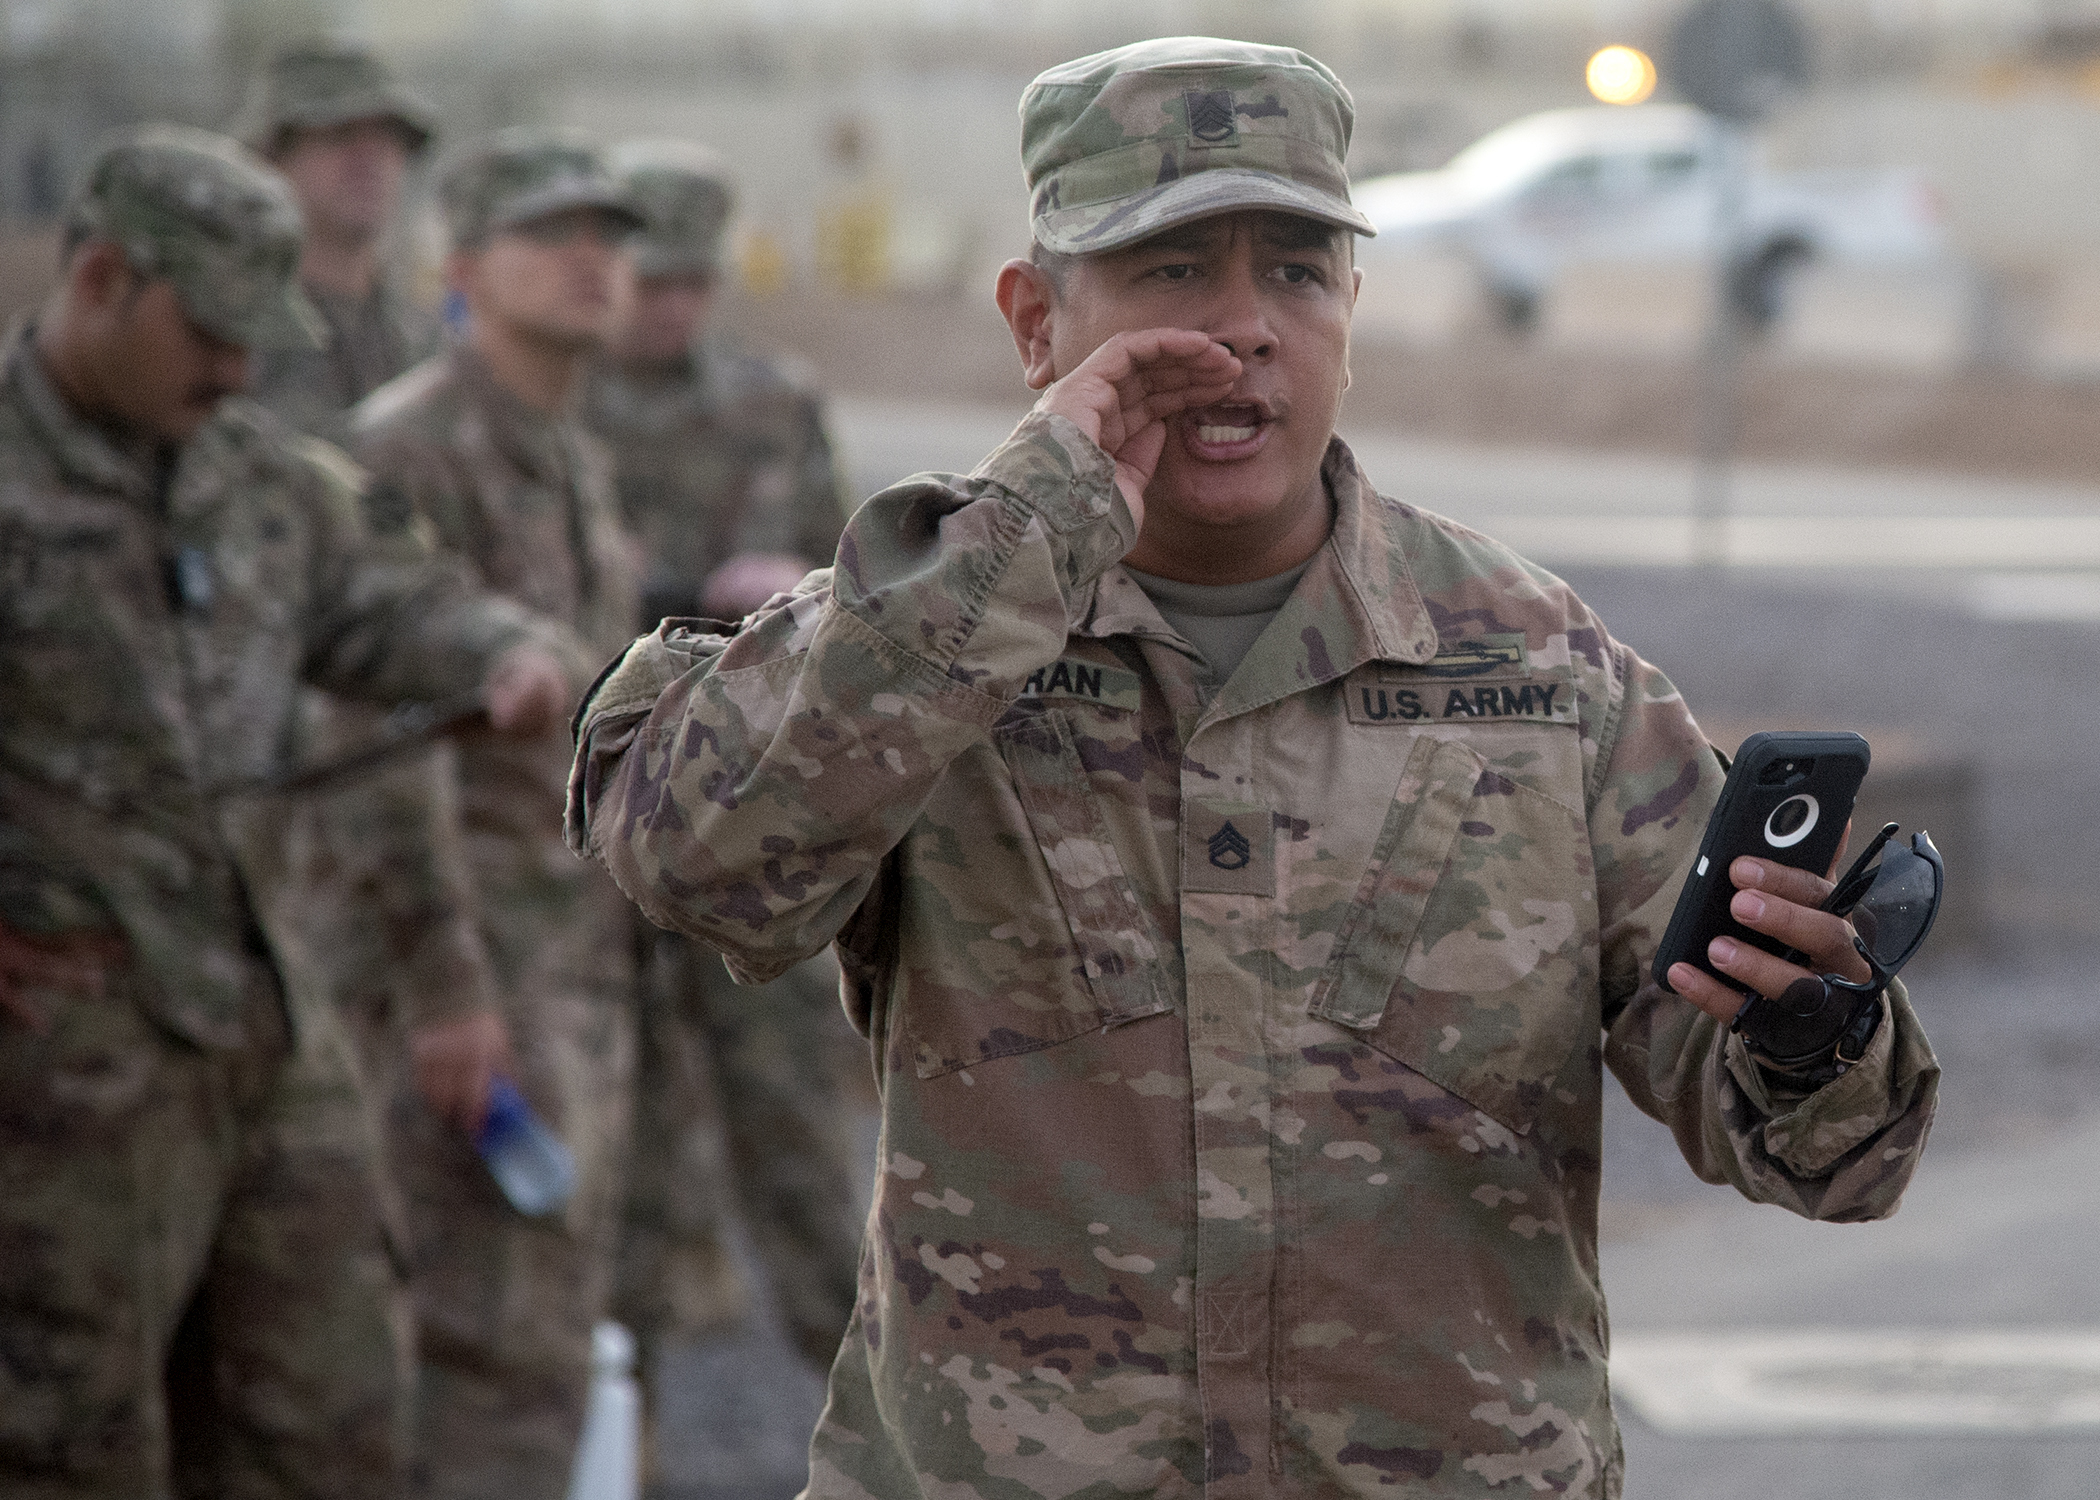 "U.S. Army Staff Sgt. Zachary Fejeran, Bowie Company, 1st Battalion, Task Force Alamo, Texas National Guard, assigned to Combined Joint Task Force-Horn of Africa (CJTF-HOA), Djibouti, calls out times during a ""ruckrun"" for the German Armed Forces Badge (GAFB) for Military Proficiency in Djibouti, Jan. 15, 2019. The GAFB is awarded to and worn by German service members of all ranks. Allied service members may also be awarded the badge, subject to their nations' uniform regulations. (U.S. Navy photo by Mass Communication Specialist 1st Class Nick Scott)"